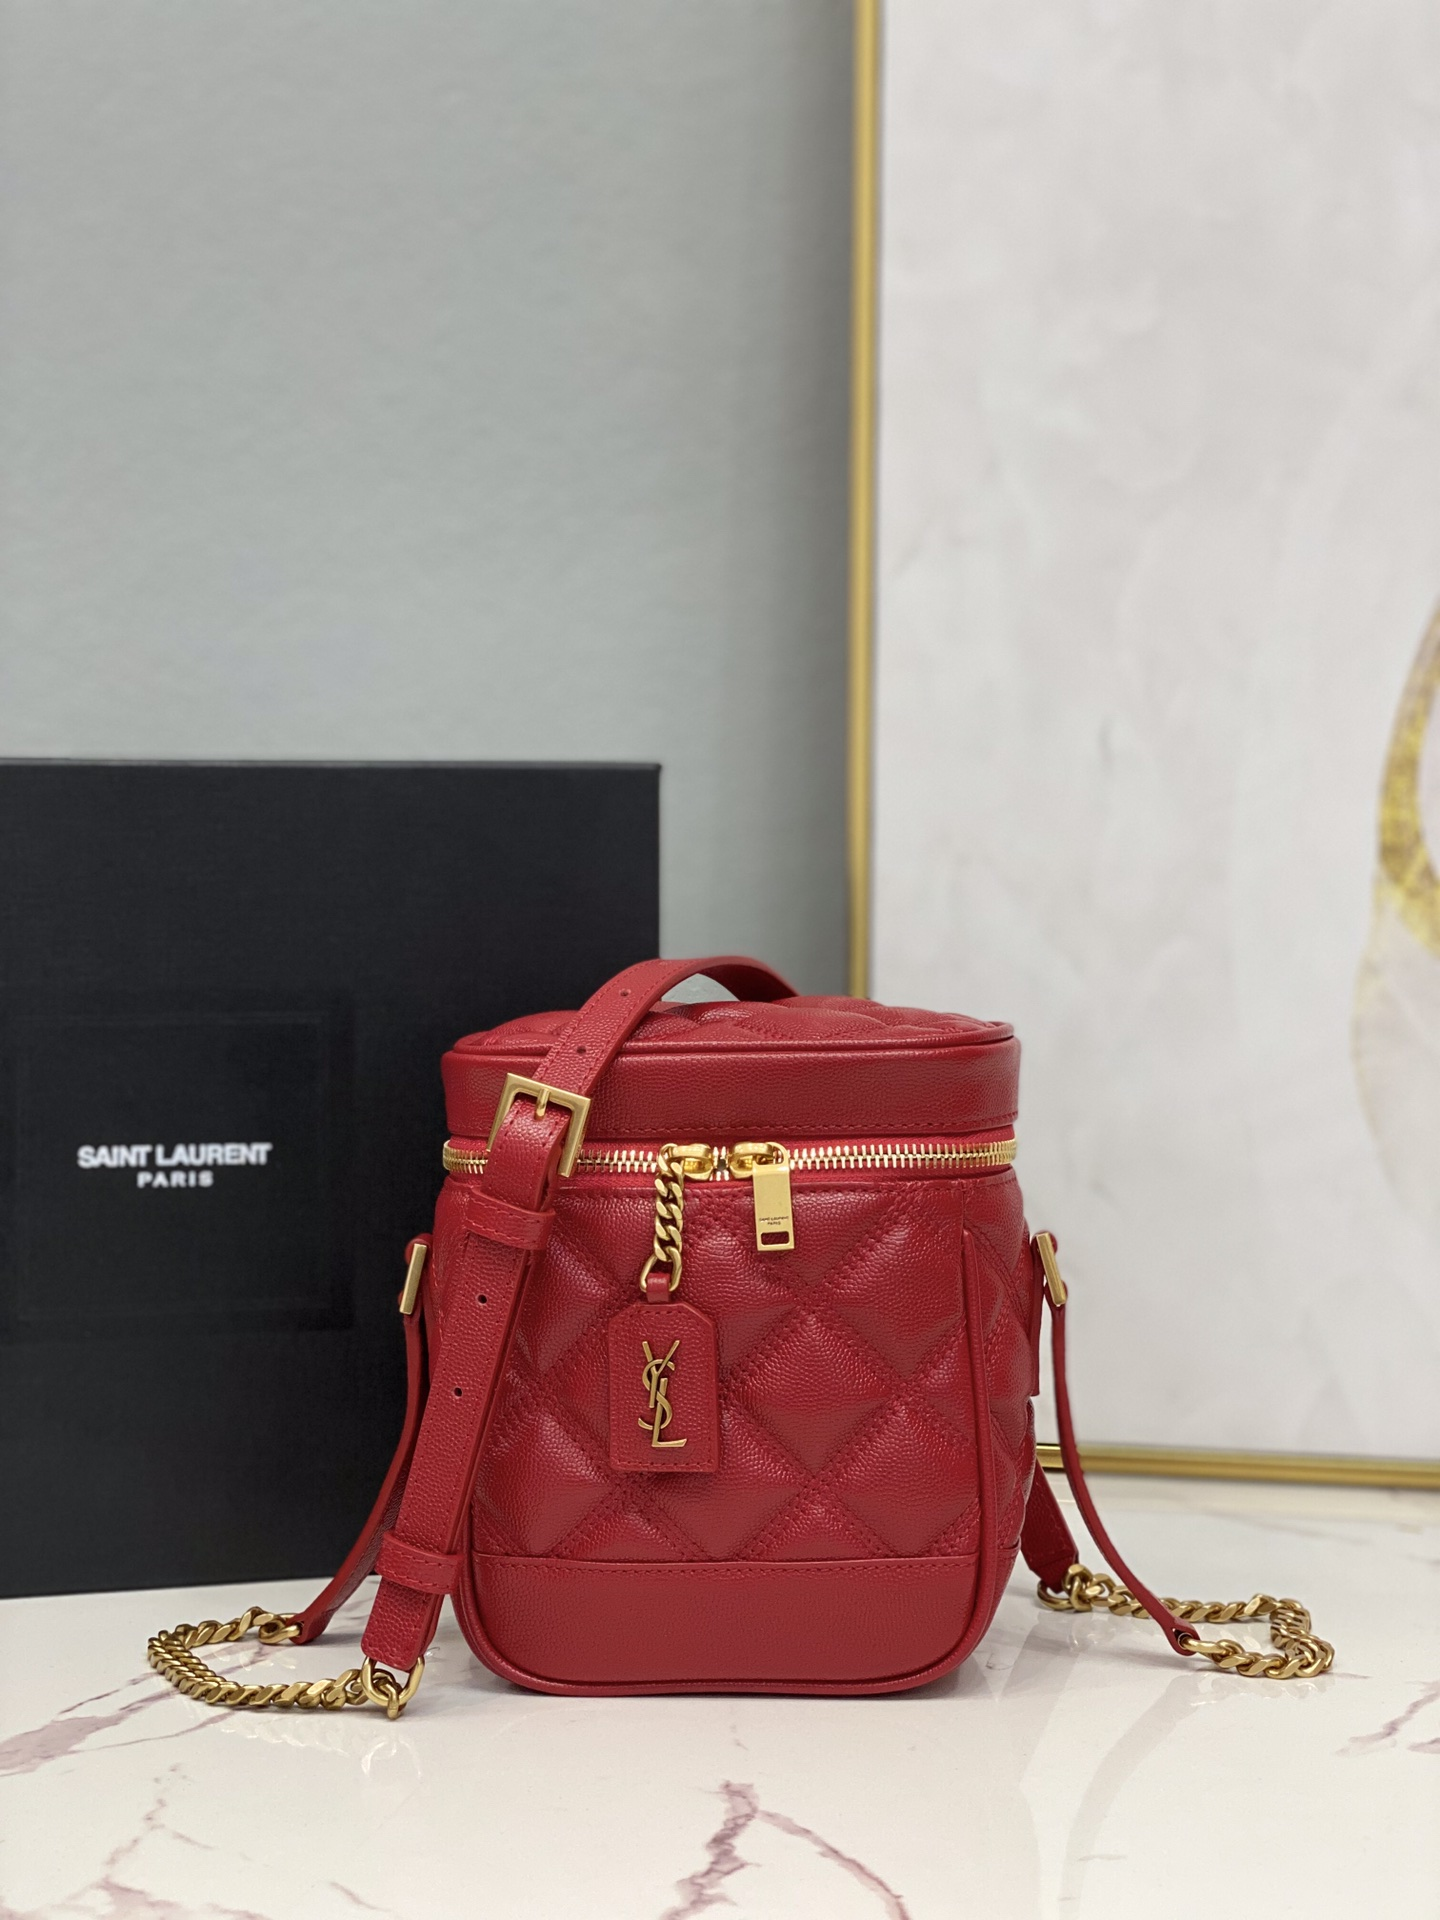 2021 Saint Laurent 80's vanity bag in carre-quilted grain de poudre embossed leather red